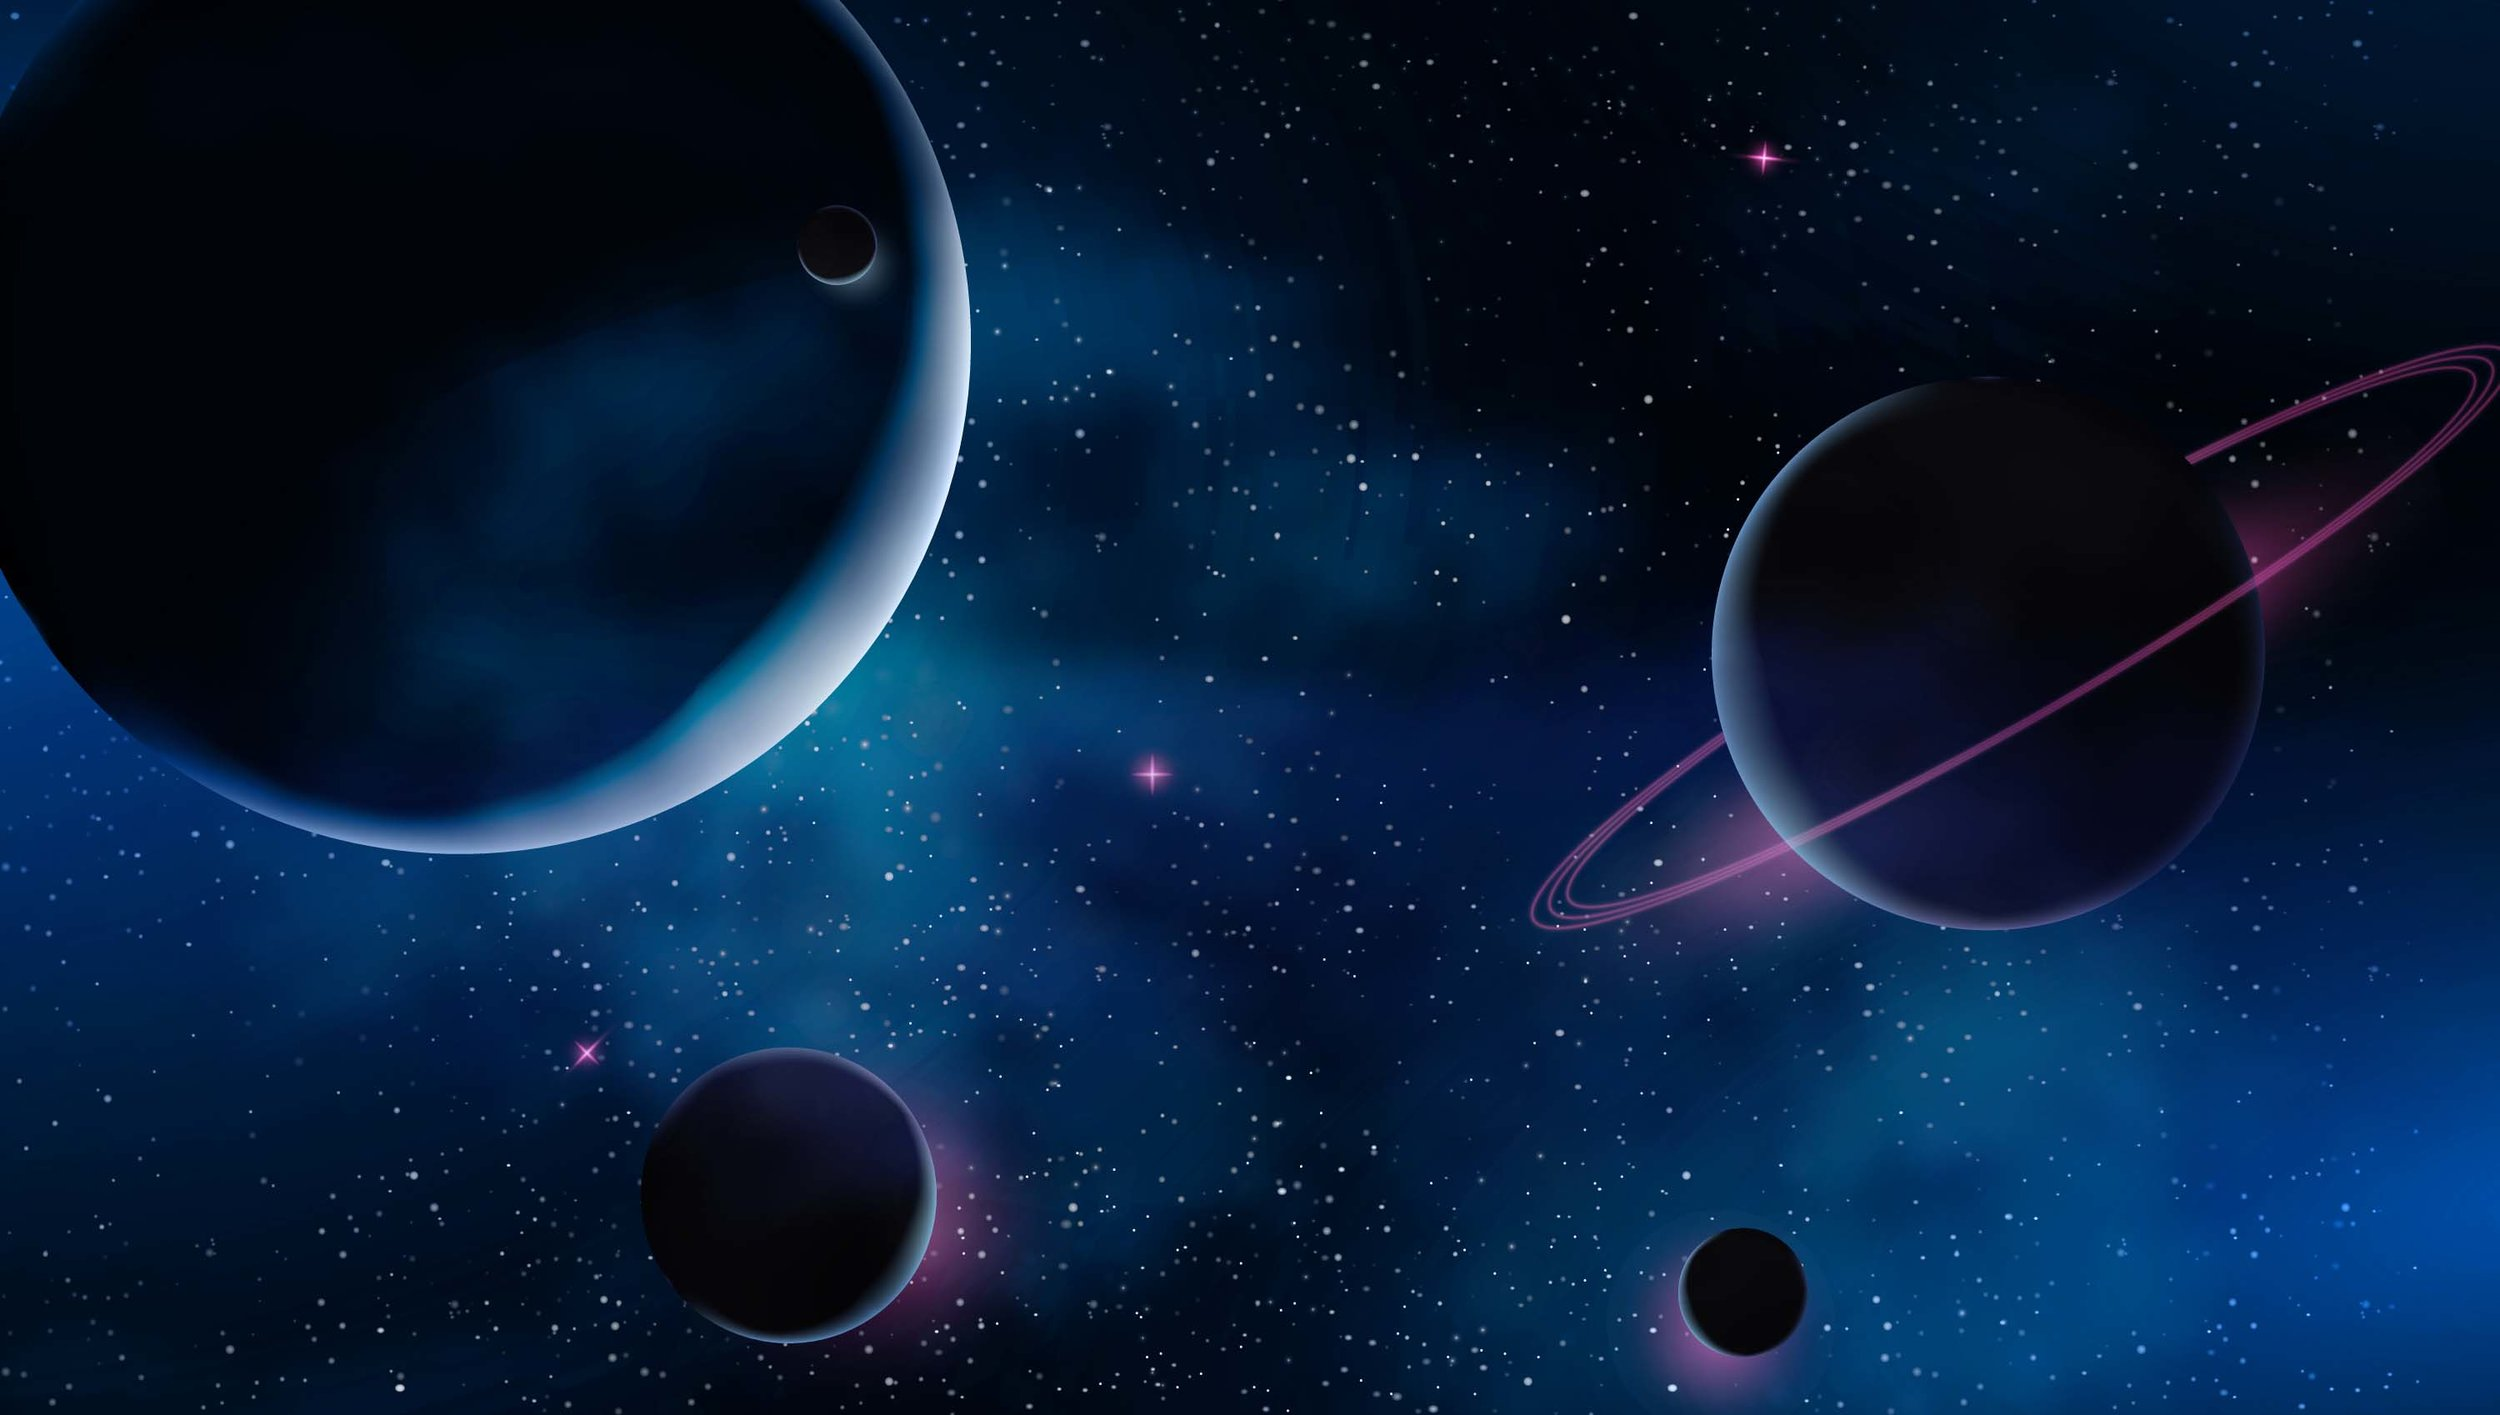 space planets.jpg